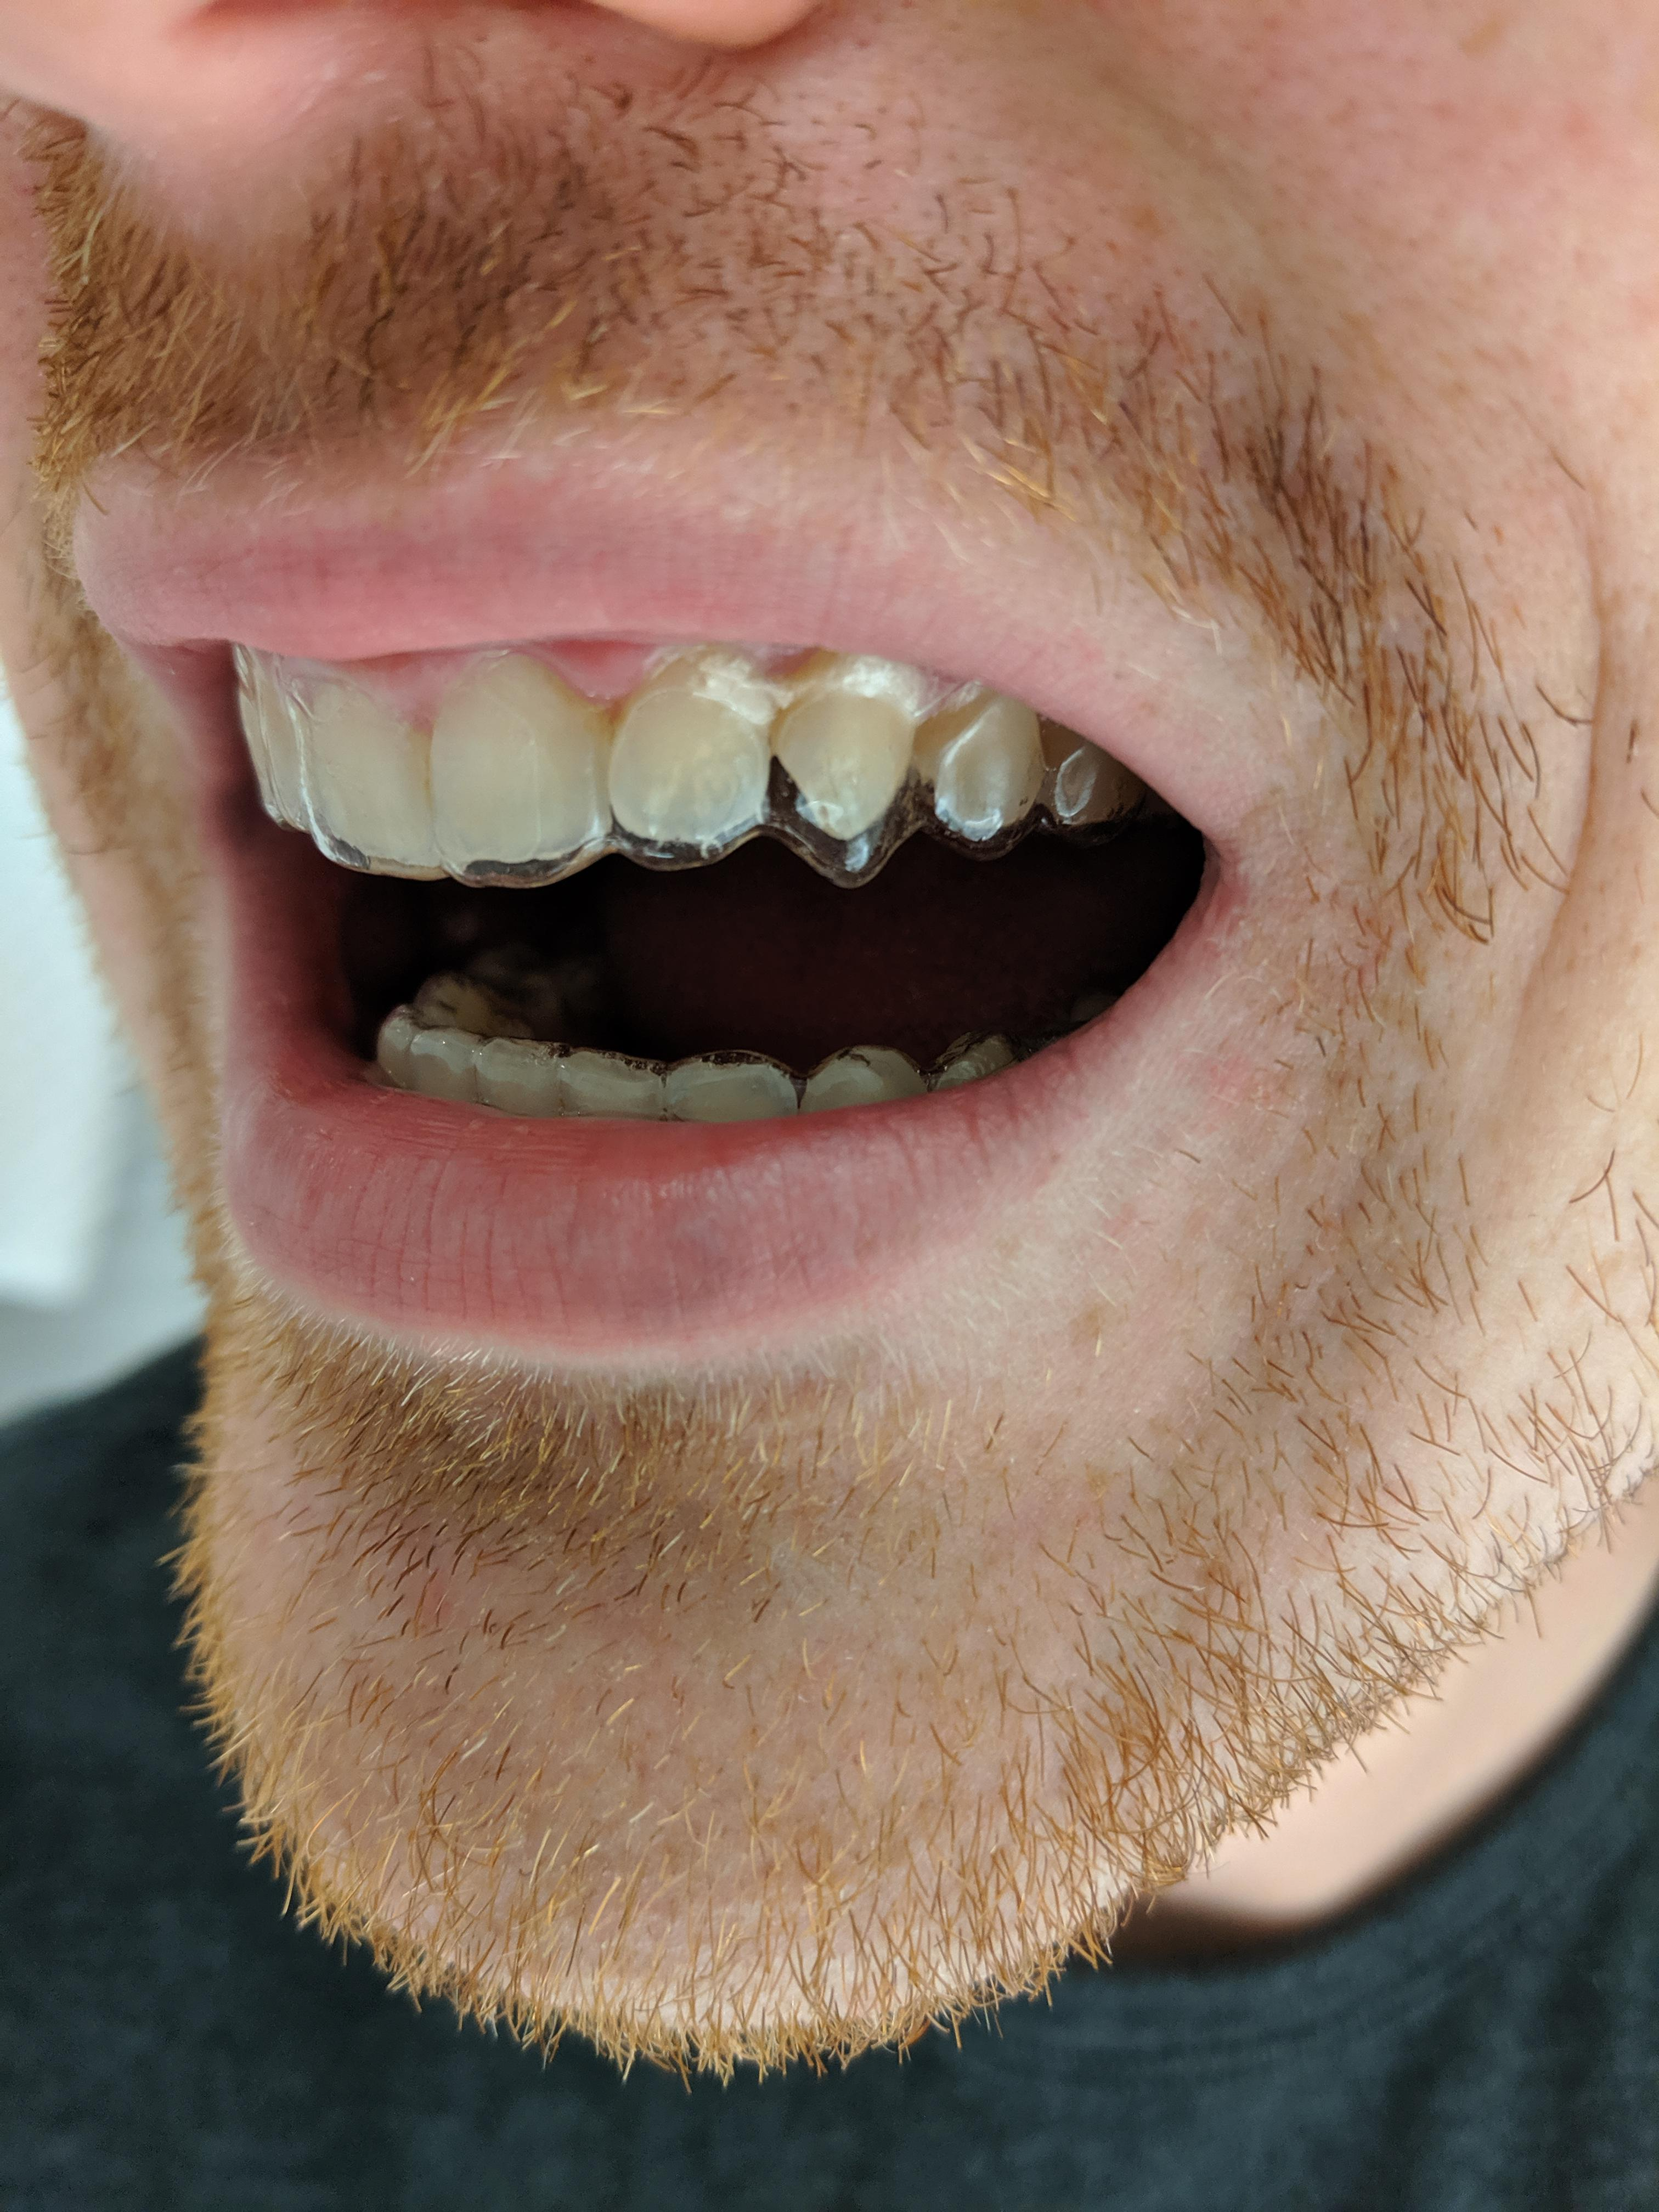 How Should Aligners Fit : should, aligners, Growing, Increasingly, Concerned, Aligners, Incorrectly, Sized, Moving, Tooth, Wrong, Notice, Aligner, Everywhere, Except, Which, Being